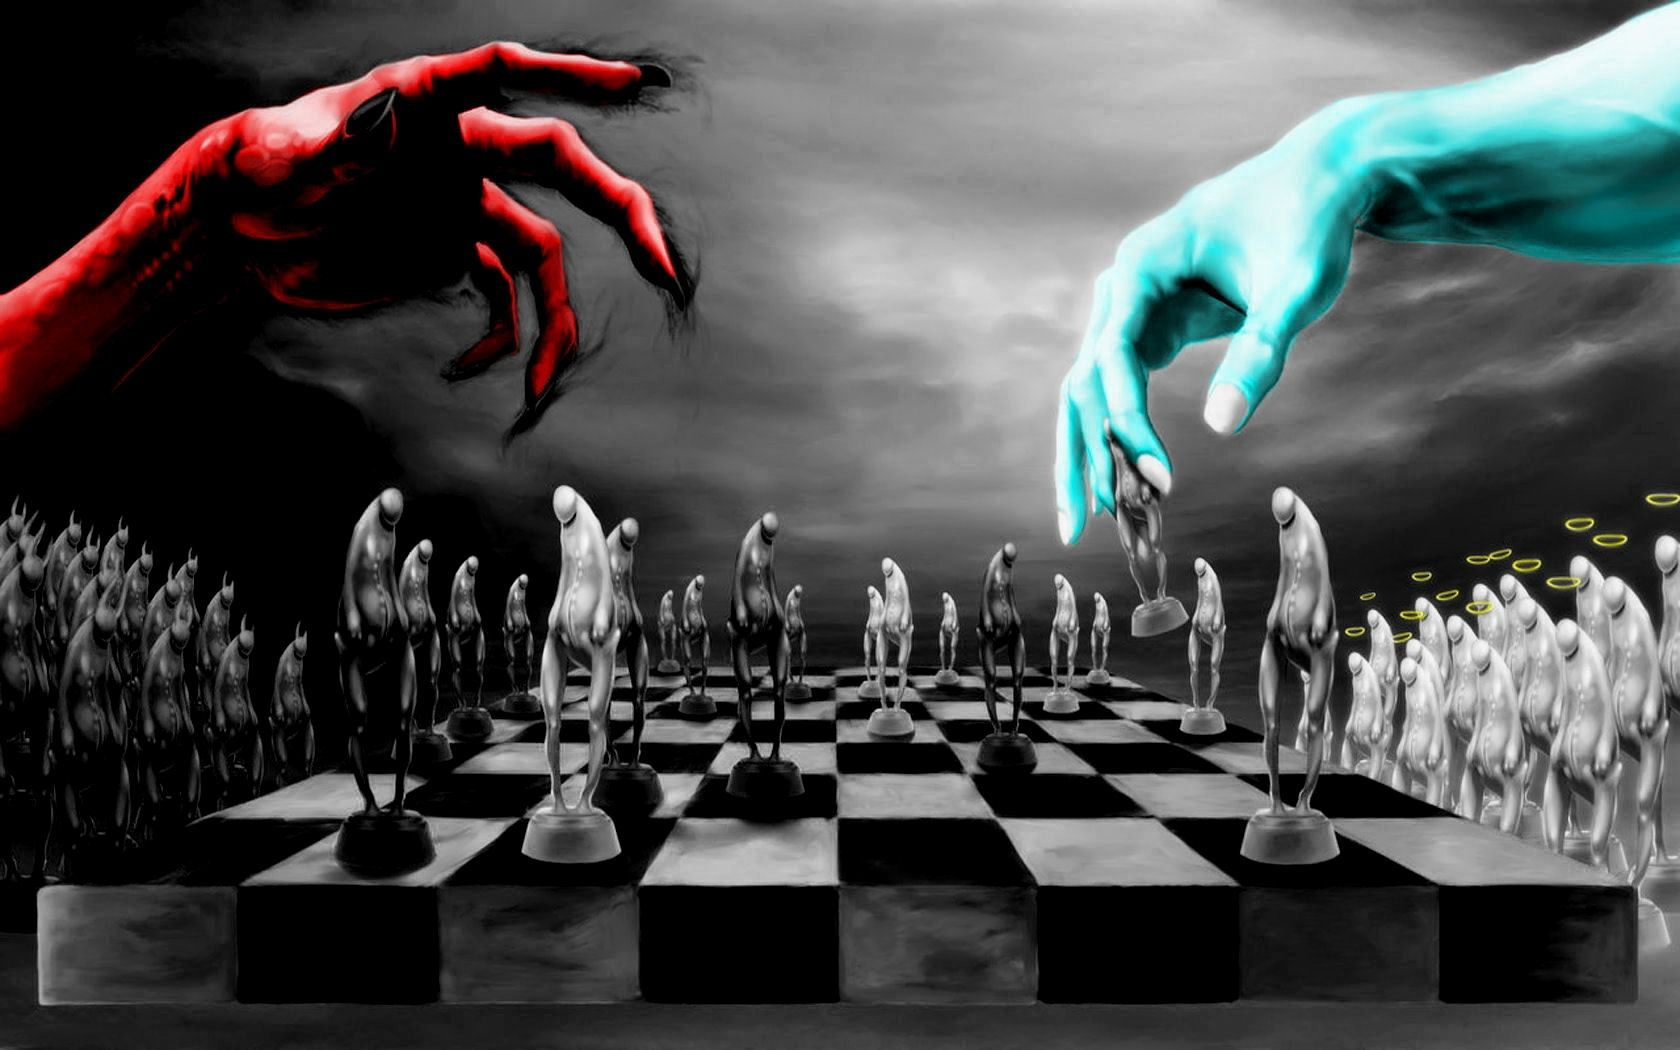 chess game between forces of good and evil, light and dark, positivity and negativity, dajjal, shaitan, satan,